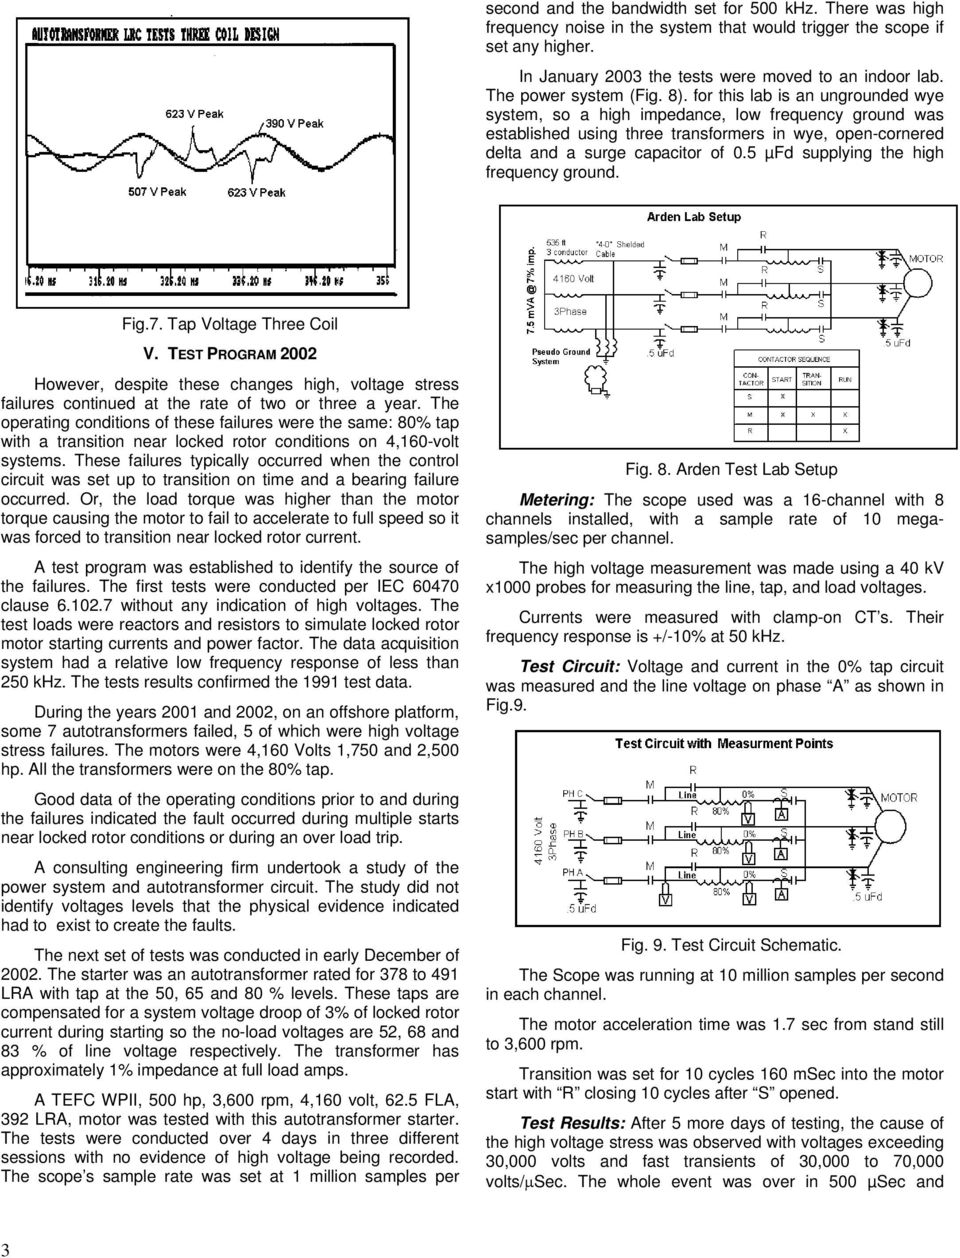 Medium Voltage Reduced Autotransformer Starter Failures And Capacitor Switches Cause Most Singlephase Motor Malfunctions For This Lab Is An Ungrounded Wye System So A High Impedance Low Frequency